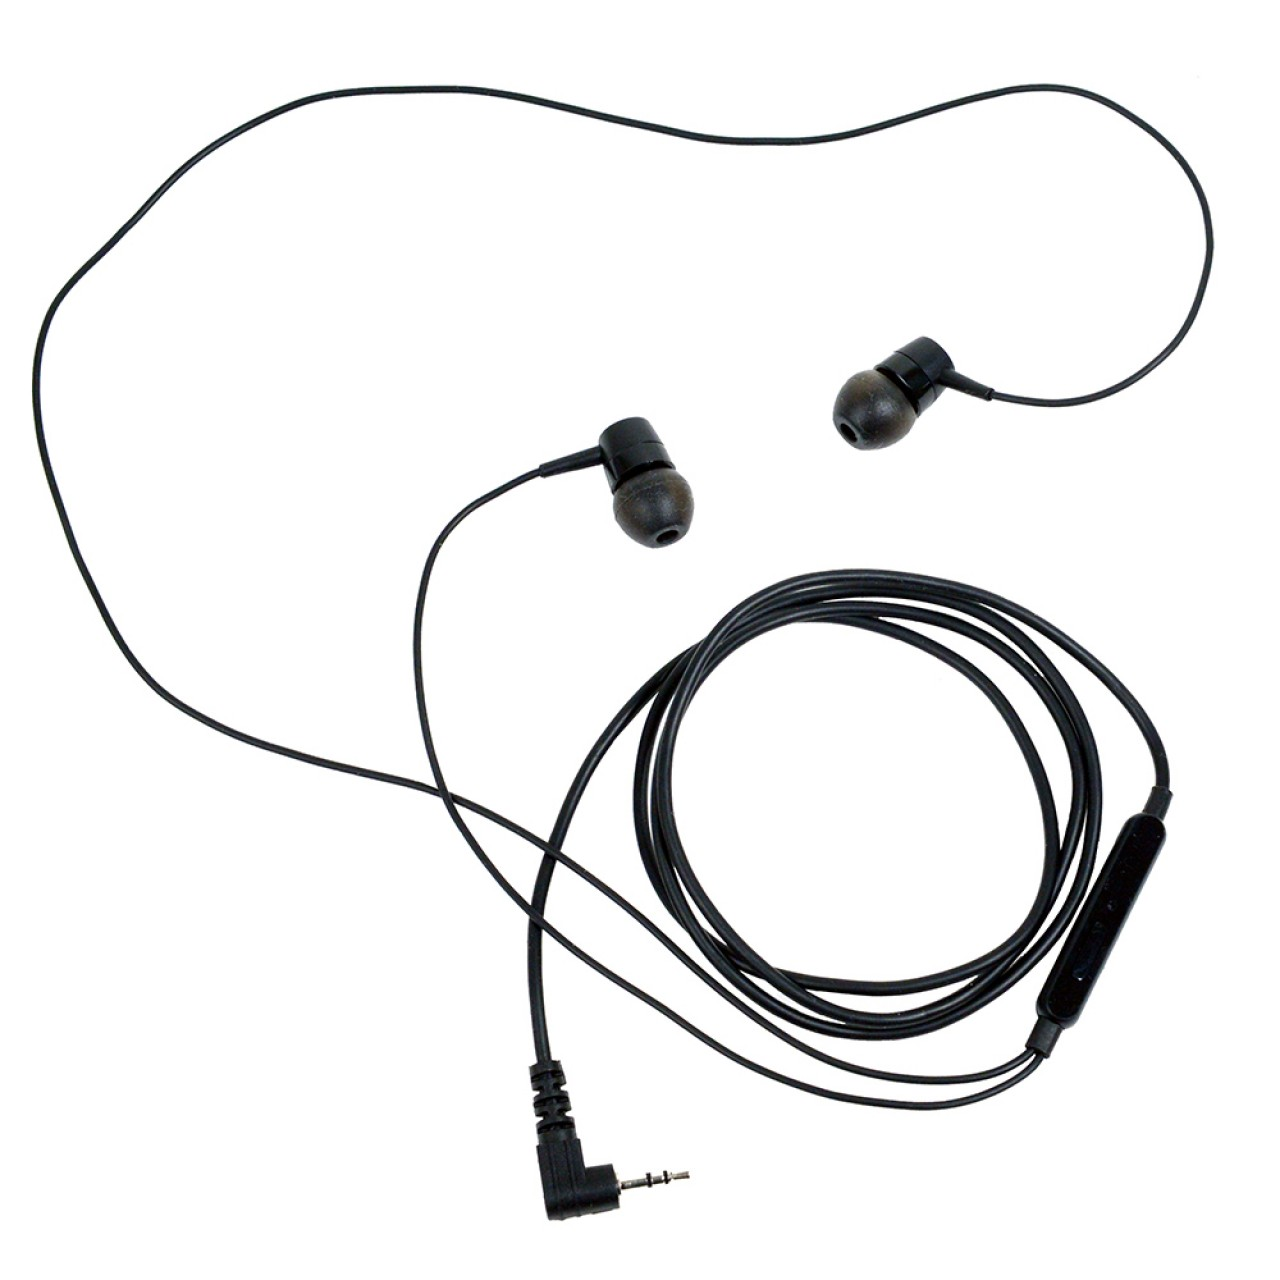 EP-SR60301 Headsets and earphones - ICOM